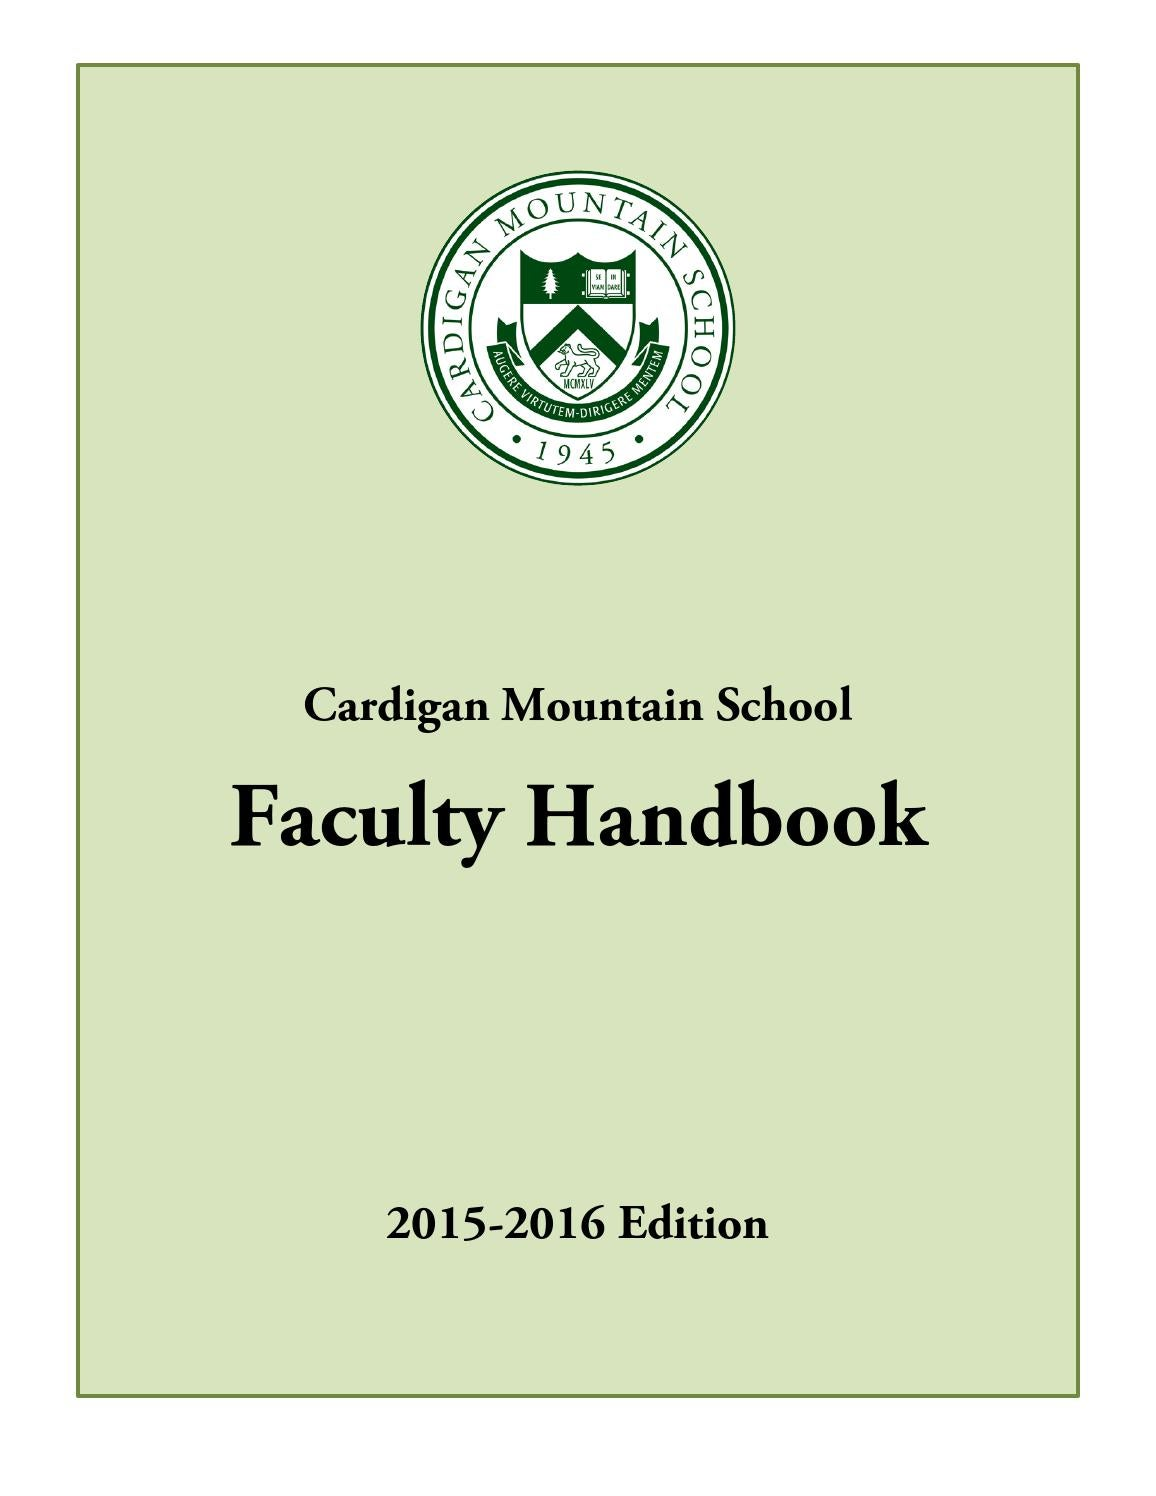 Faculty handbook for cardigan mountain school by cardigan mountain faculty handbook for cardigan mountain school by cardigan mountain school issuu fandeluxe Gallery